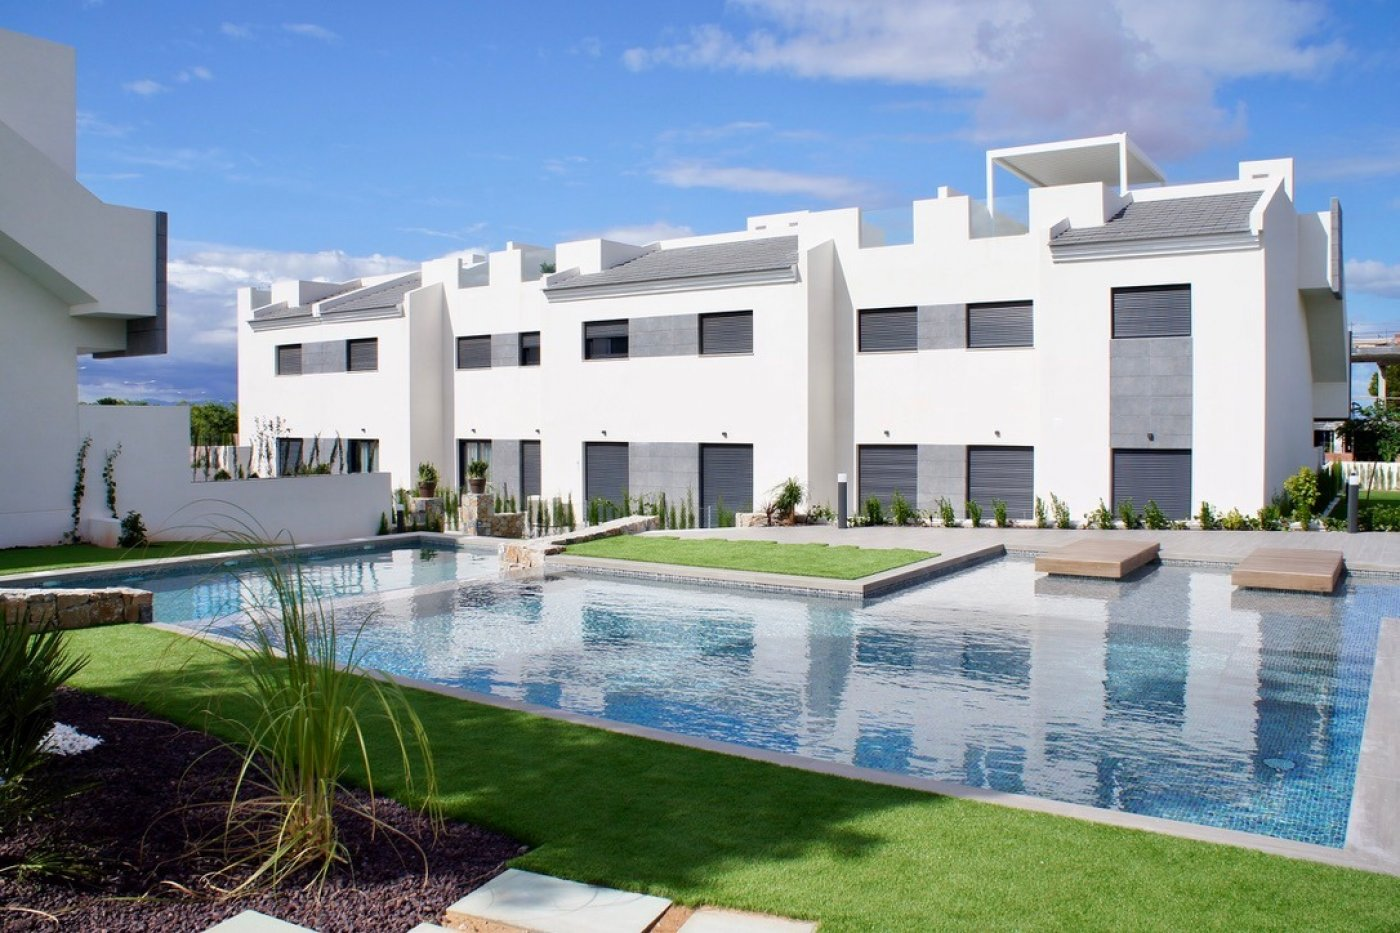 Gallery Image 3 of Lovely new build 2 bed penthouse with 2 bath and 58 m2 roof terrasse